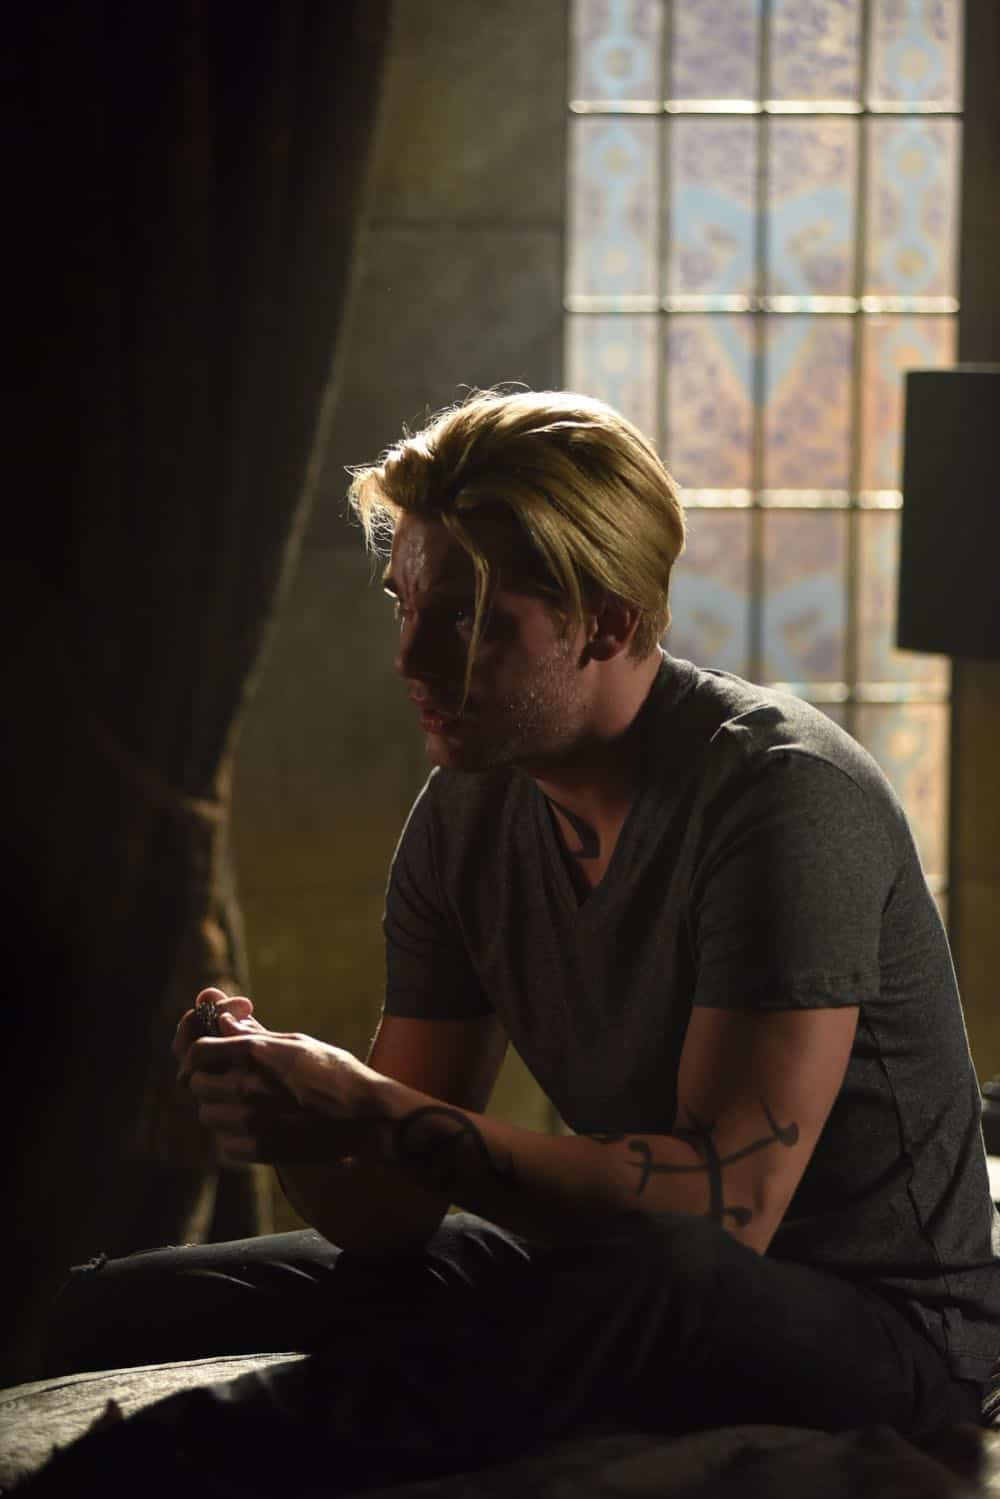 Shadowhunters Episode 4 Season 3 SHADOWHUNTERS Season 3 Episode 4 Photos Thy Soul Instructed 39